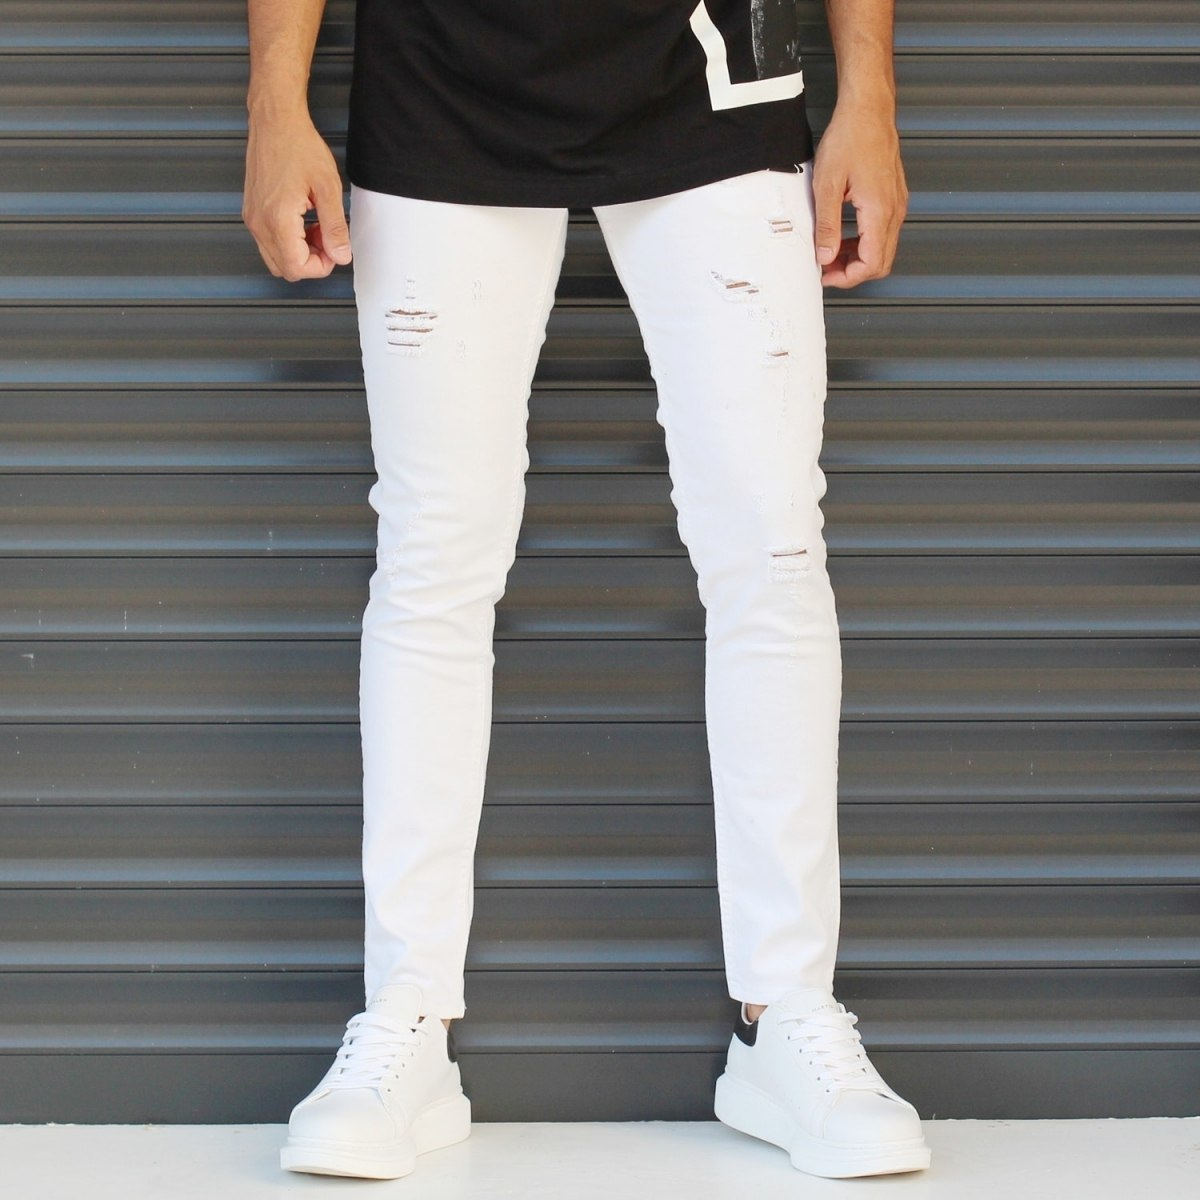 Men's Skinny Jeans With Thin Rips In White